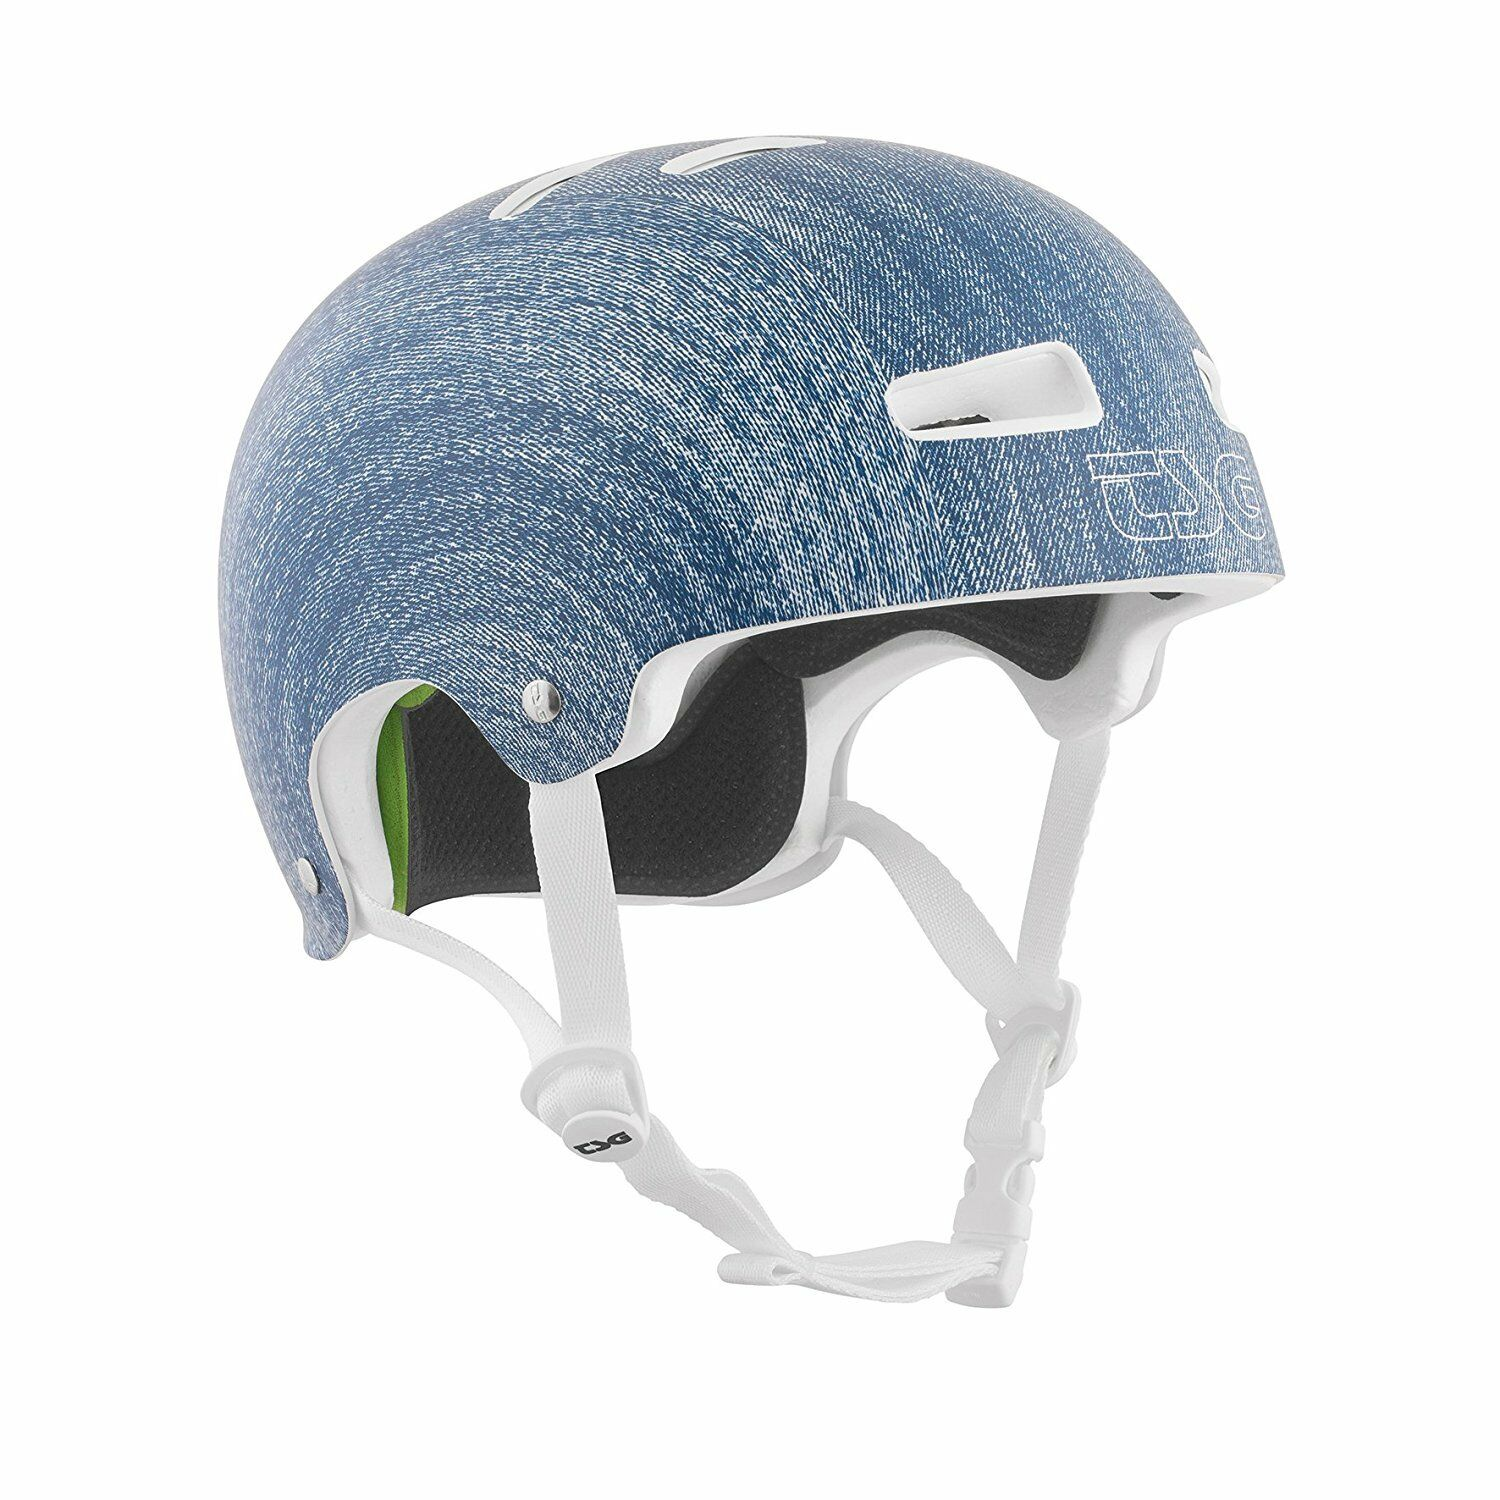 TSG Evolution Helmet Special Makup Denim 7500470-35-281, S M